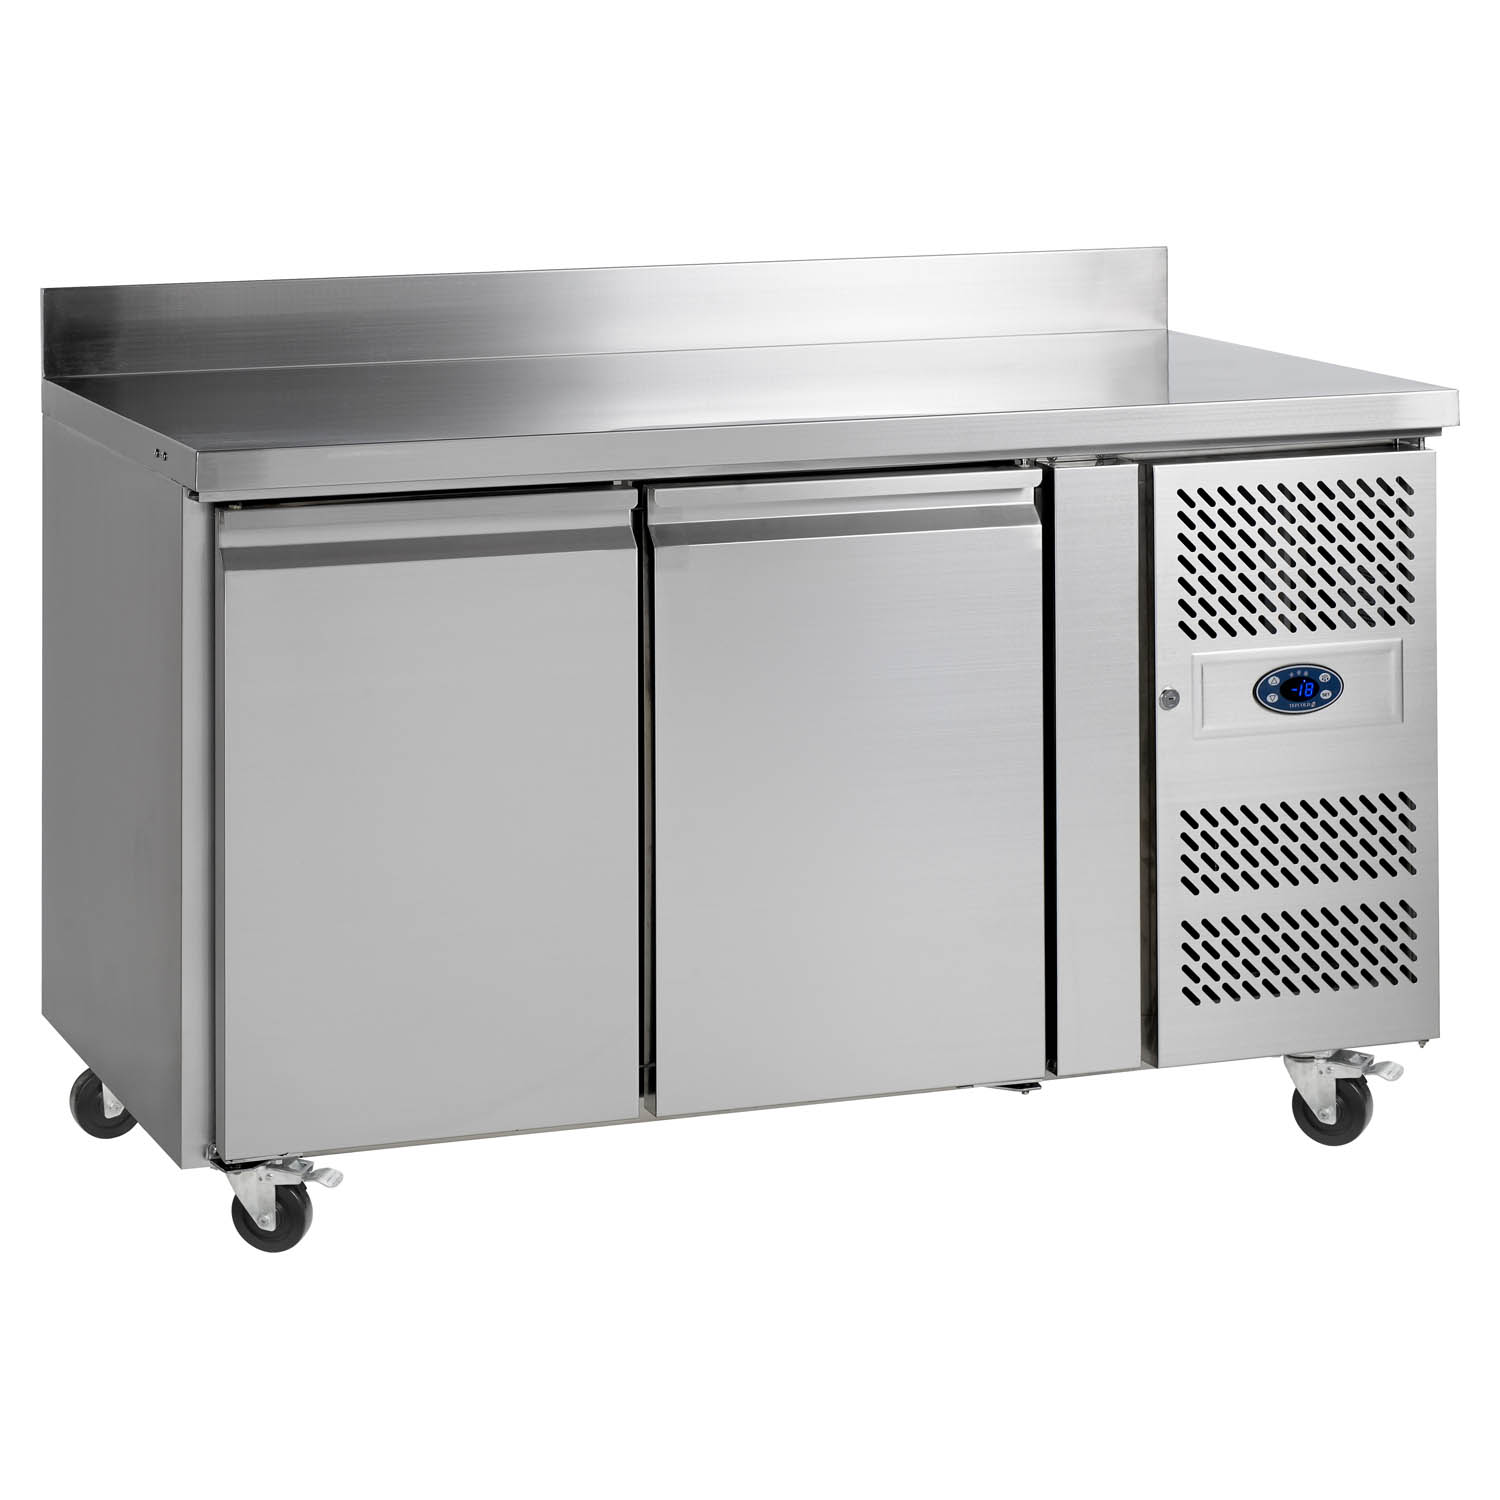 Tefcold CK7210P SS Gastronorm Stainless Steel Counter Freezer